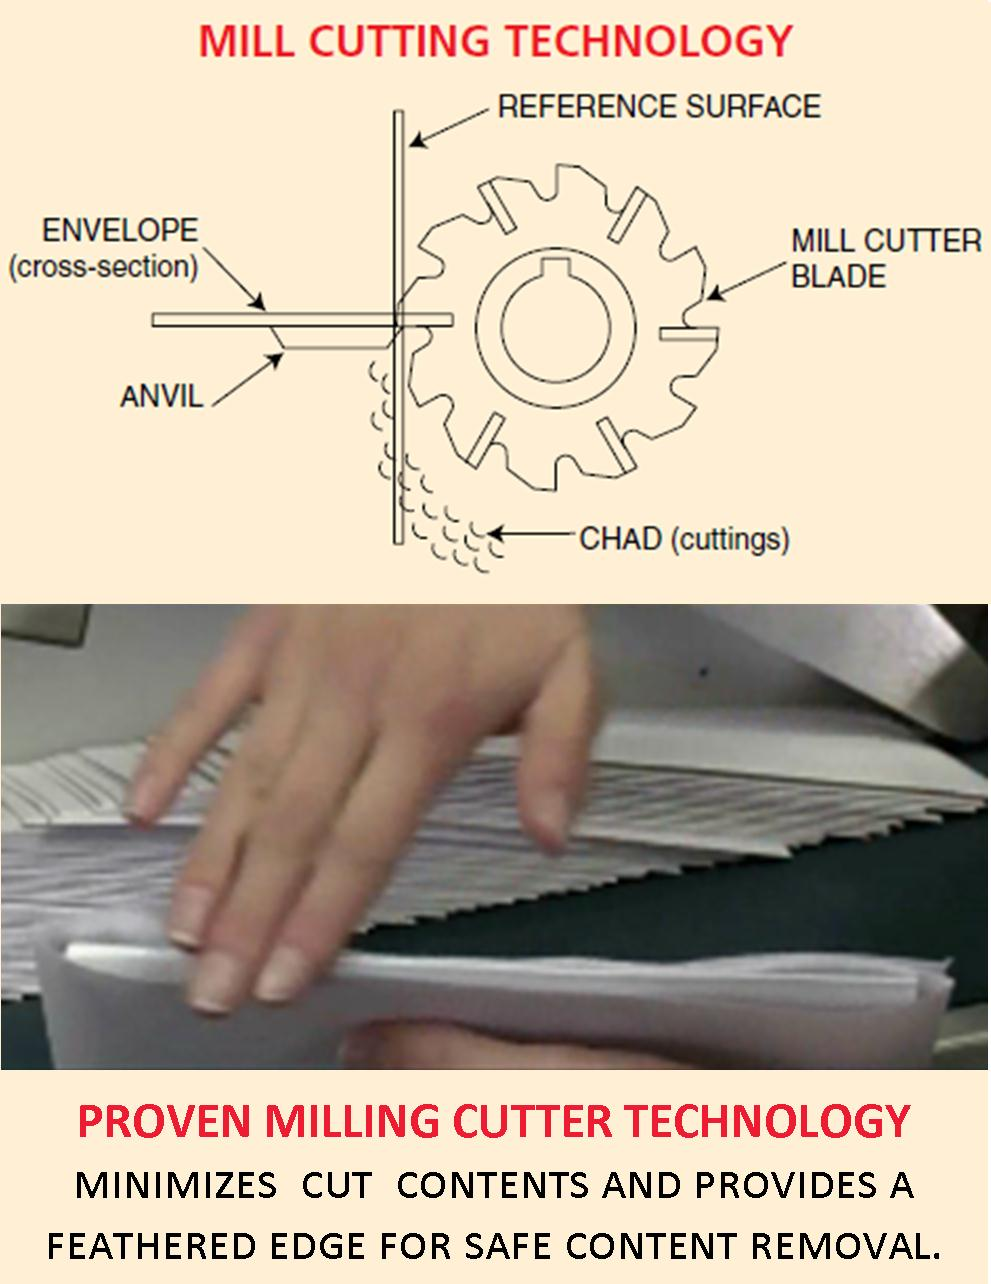 MCT - Milling Cutter Technology